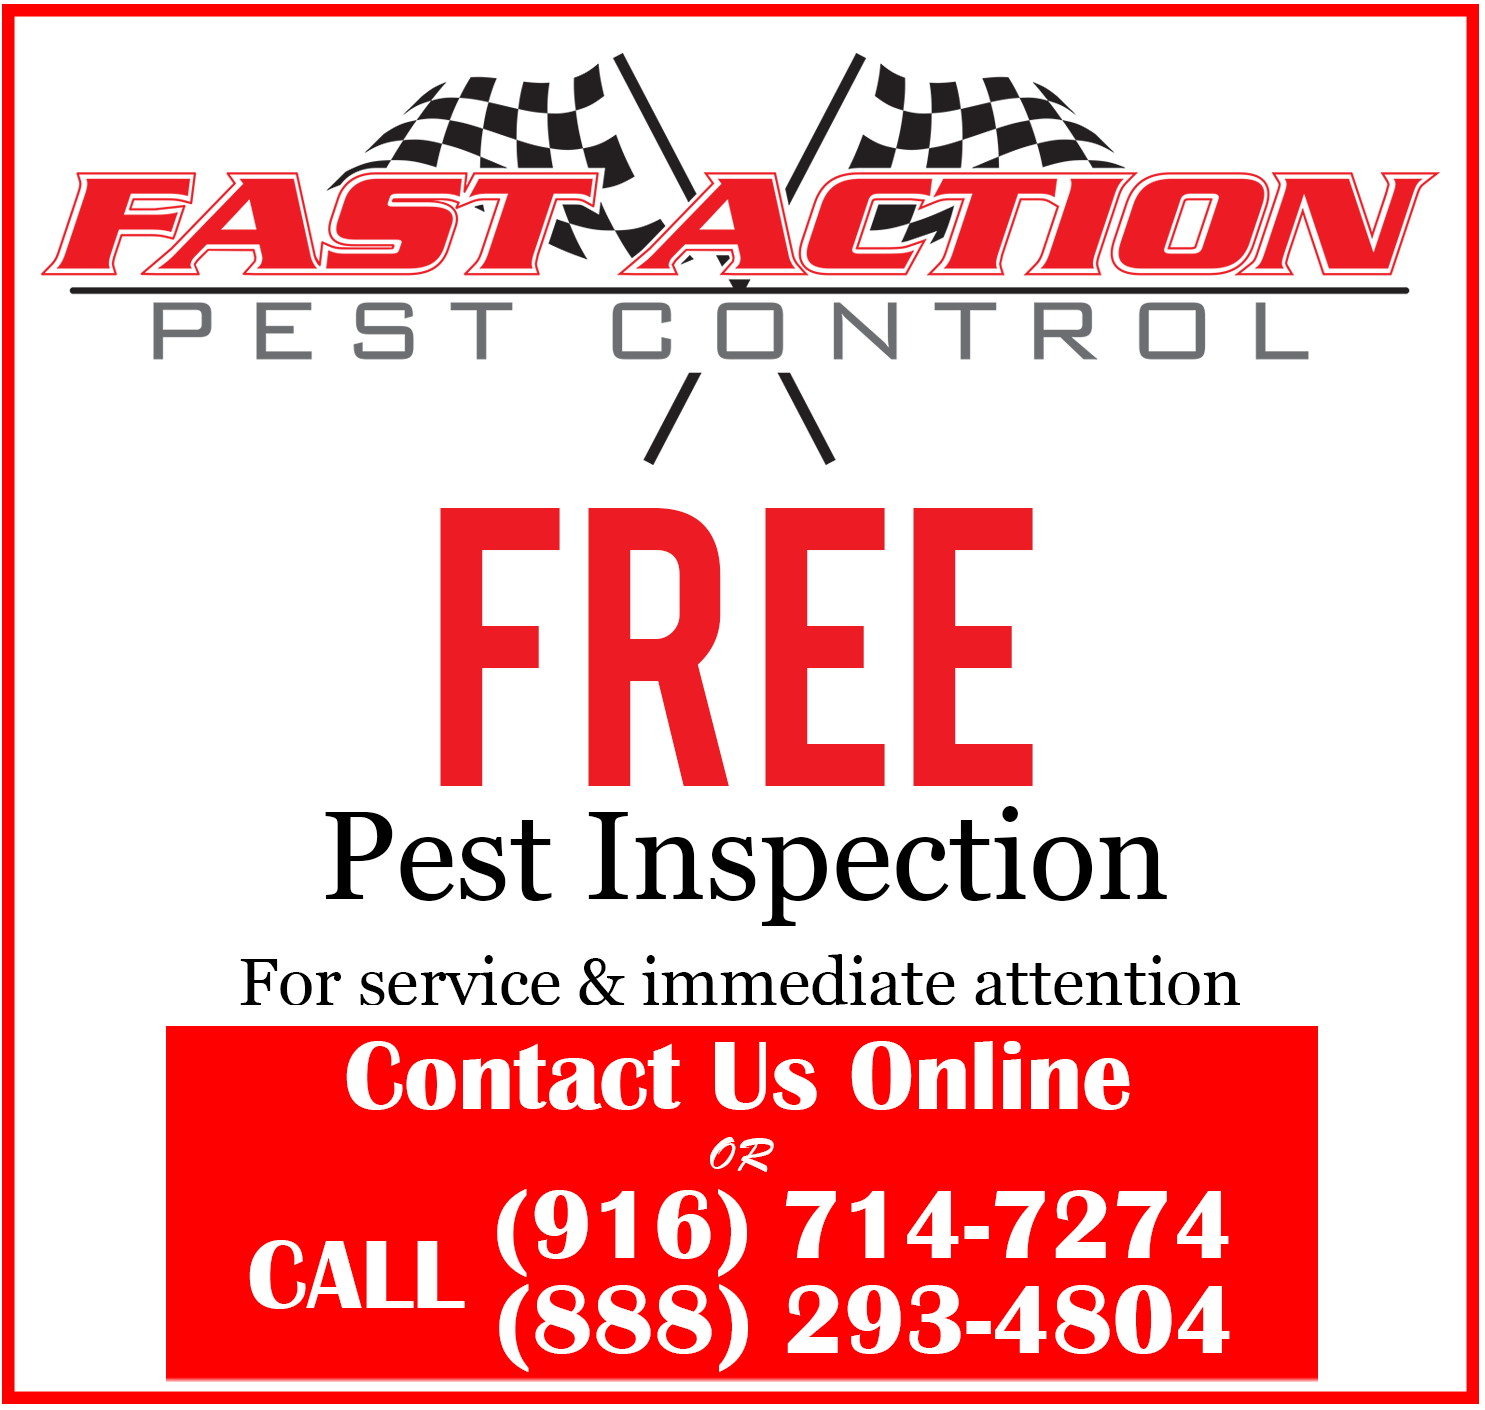 Top Rated Pest Control & Extermination Services in Sacramento, CA. 916 714-7274 Call now For A Fast Response to your Insect or Rodent Problems.